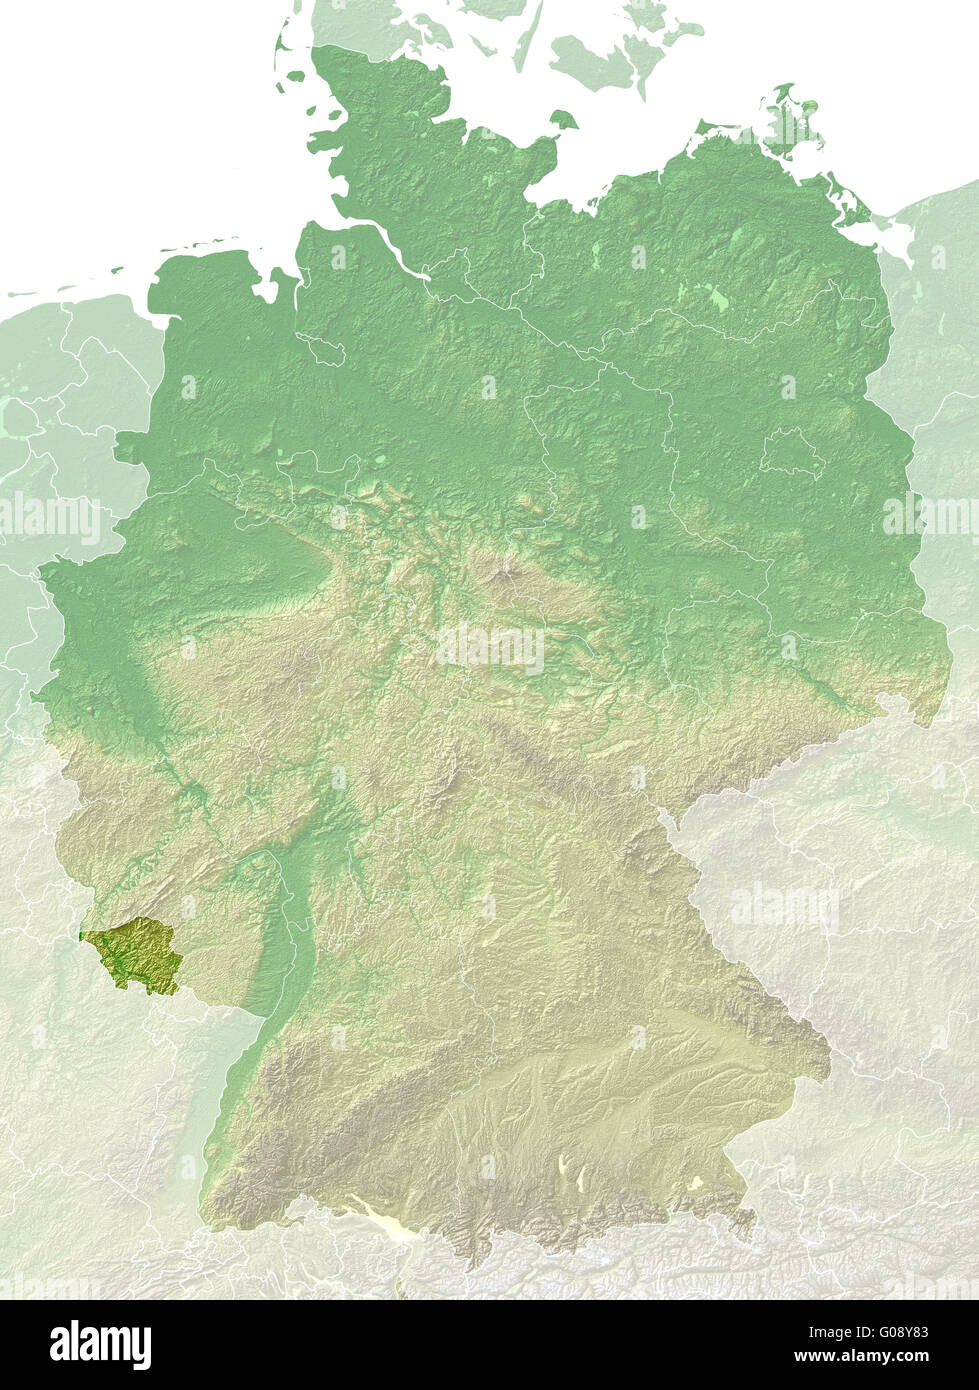 Saarland - topographical relief map Germany - Stock Image